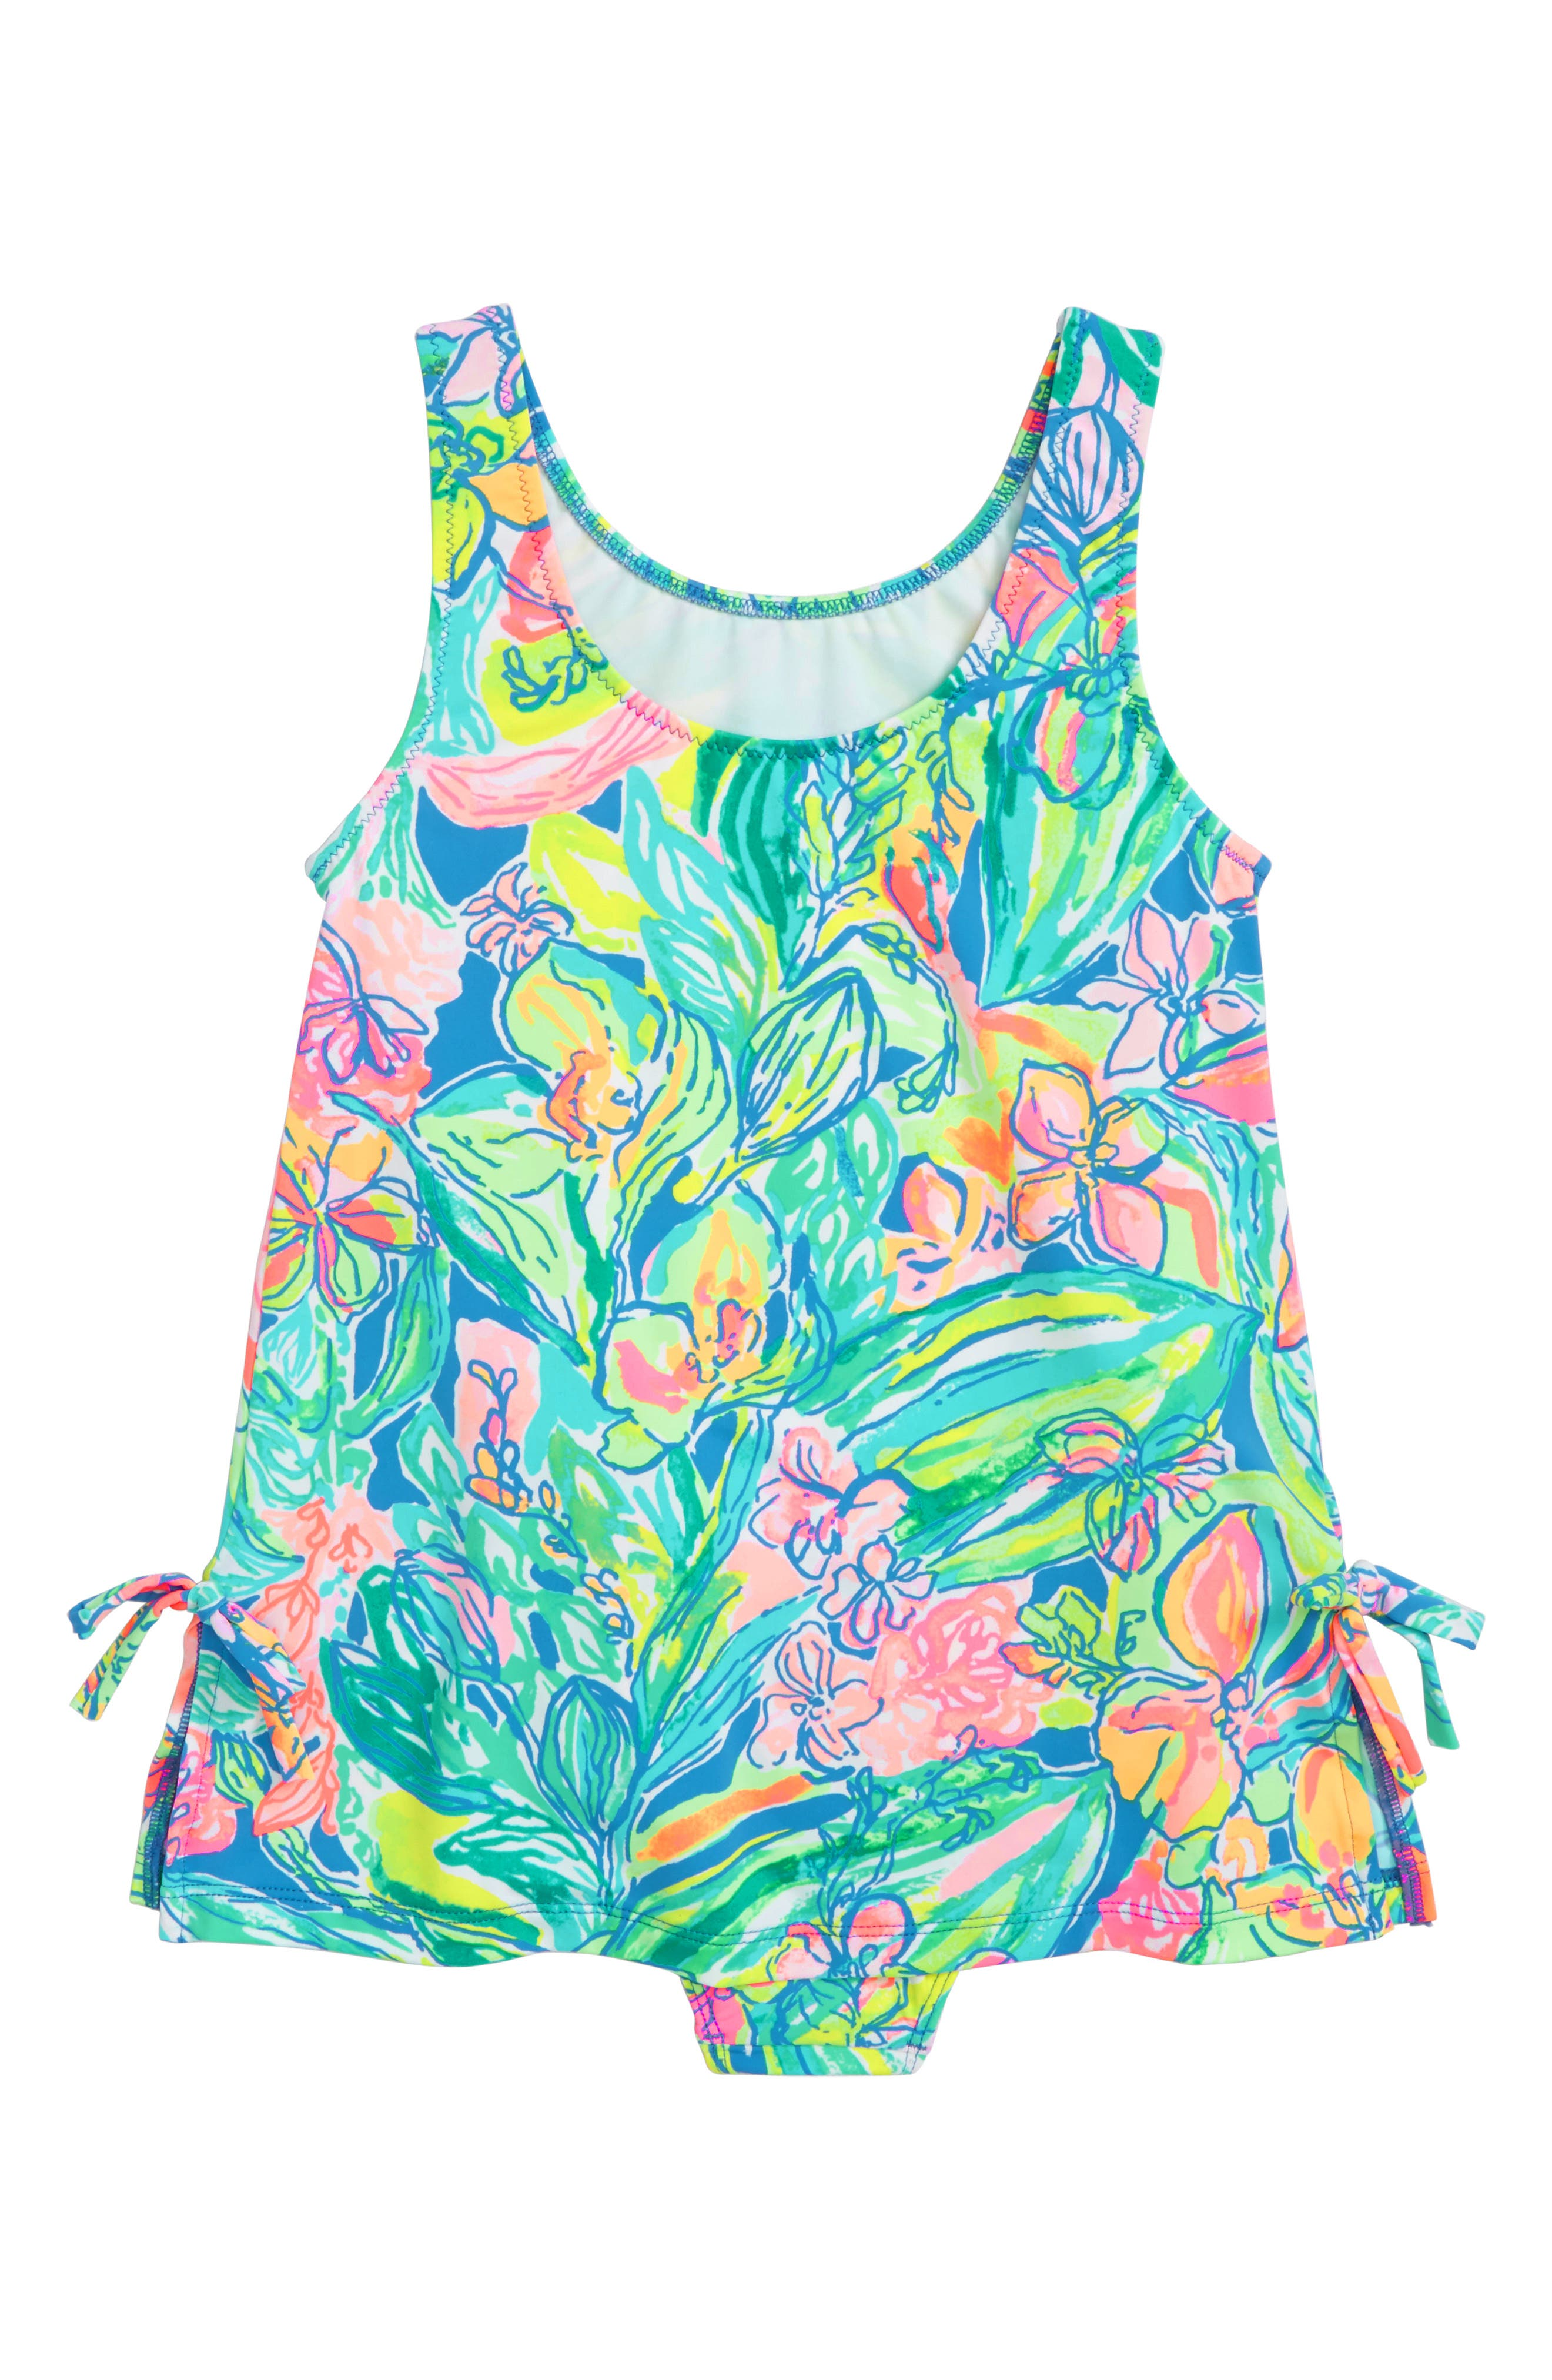 Little Lilly One-Piece Swimsuit,                             Main thumbnail 1, color,                             420